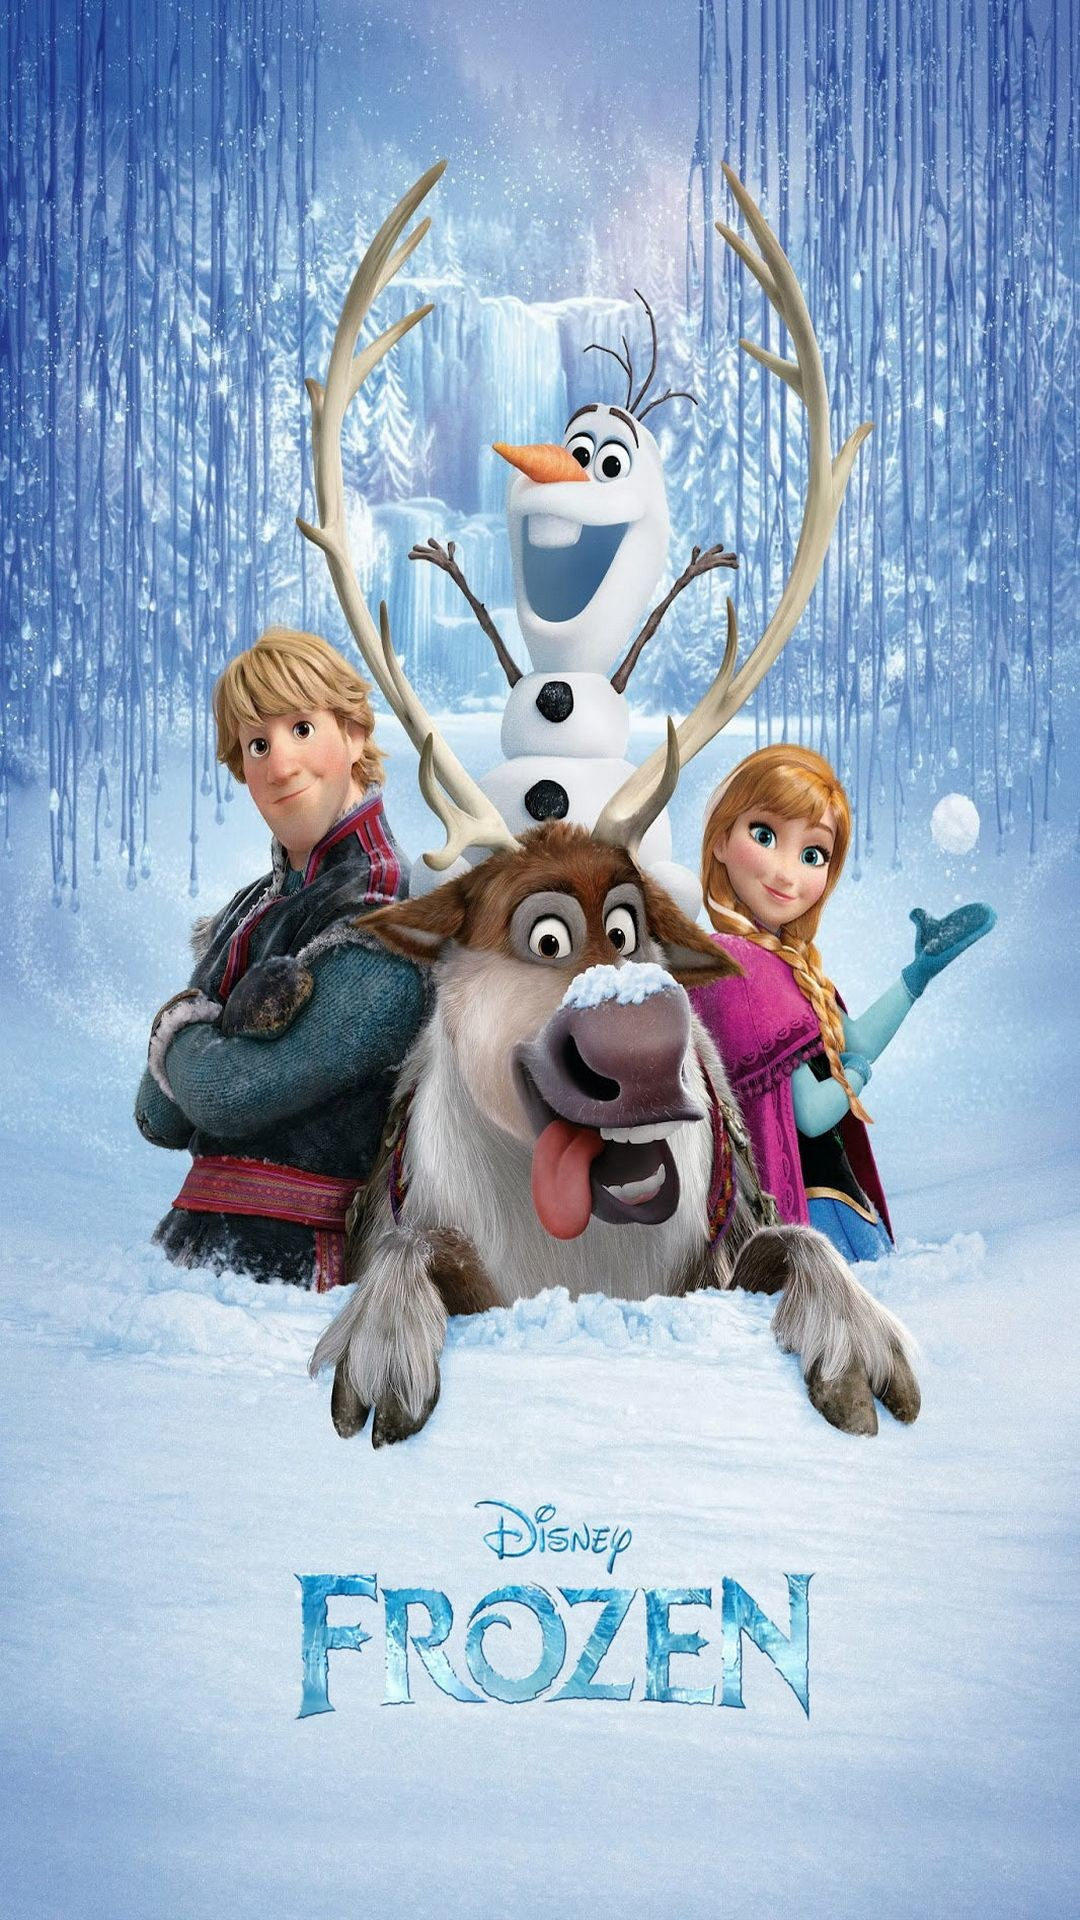 Res: 1080x1920, Movies Frozen Anna Olaf Kristoff Deer White Blue Disney Cartoon Kids Funny  Comedy HD iPhone 6 plus Wallpaper